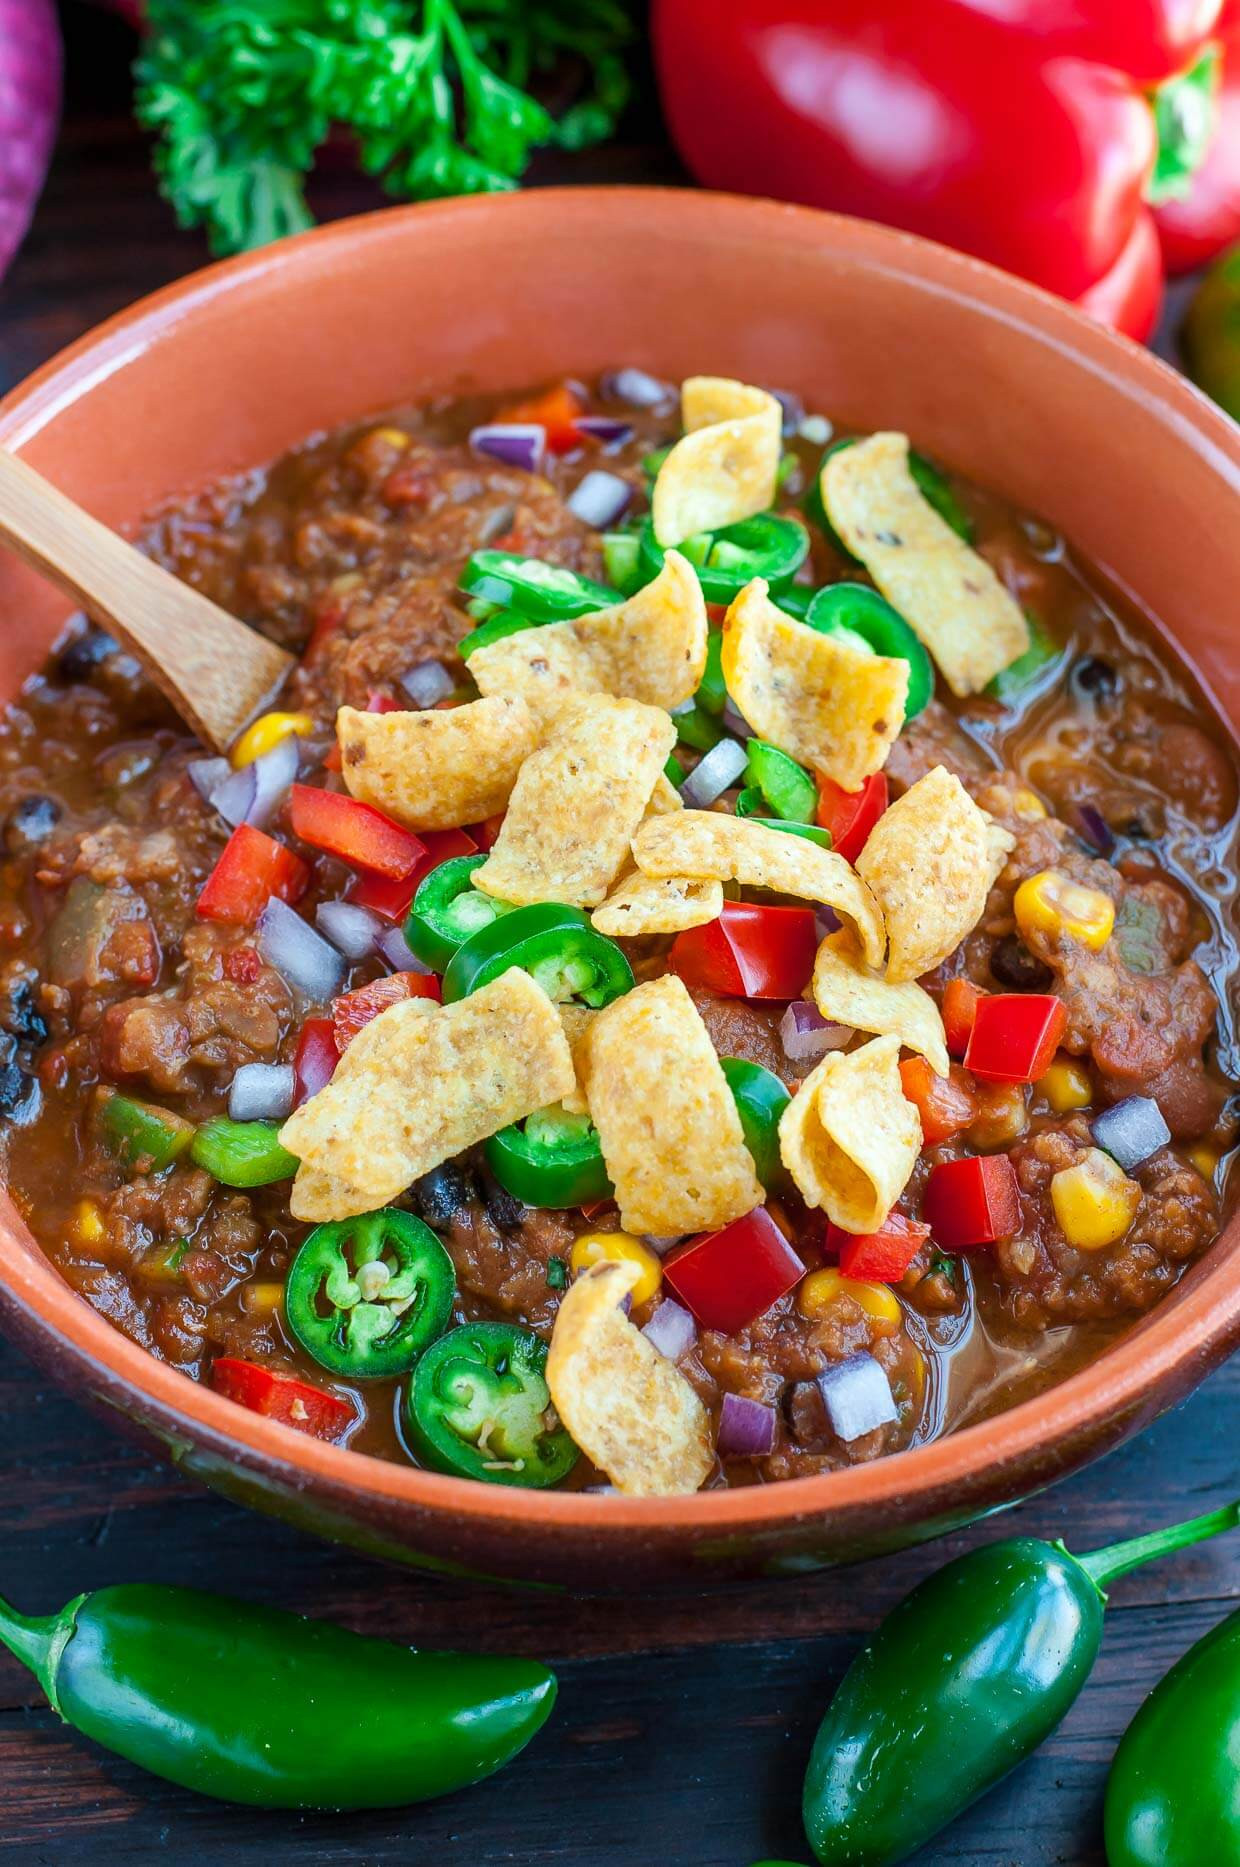 Vegan Mexican Recipes  The Best 40 Vegan Mexican Recipes for a Healthy Easy